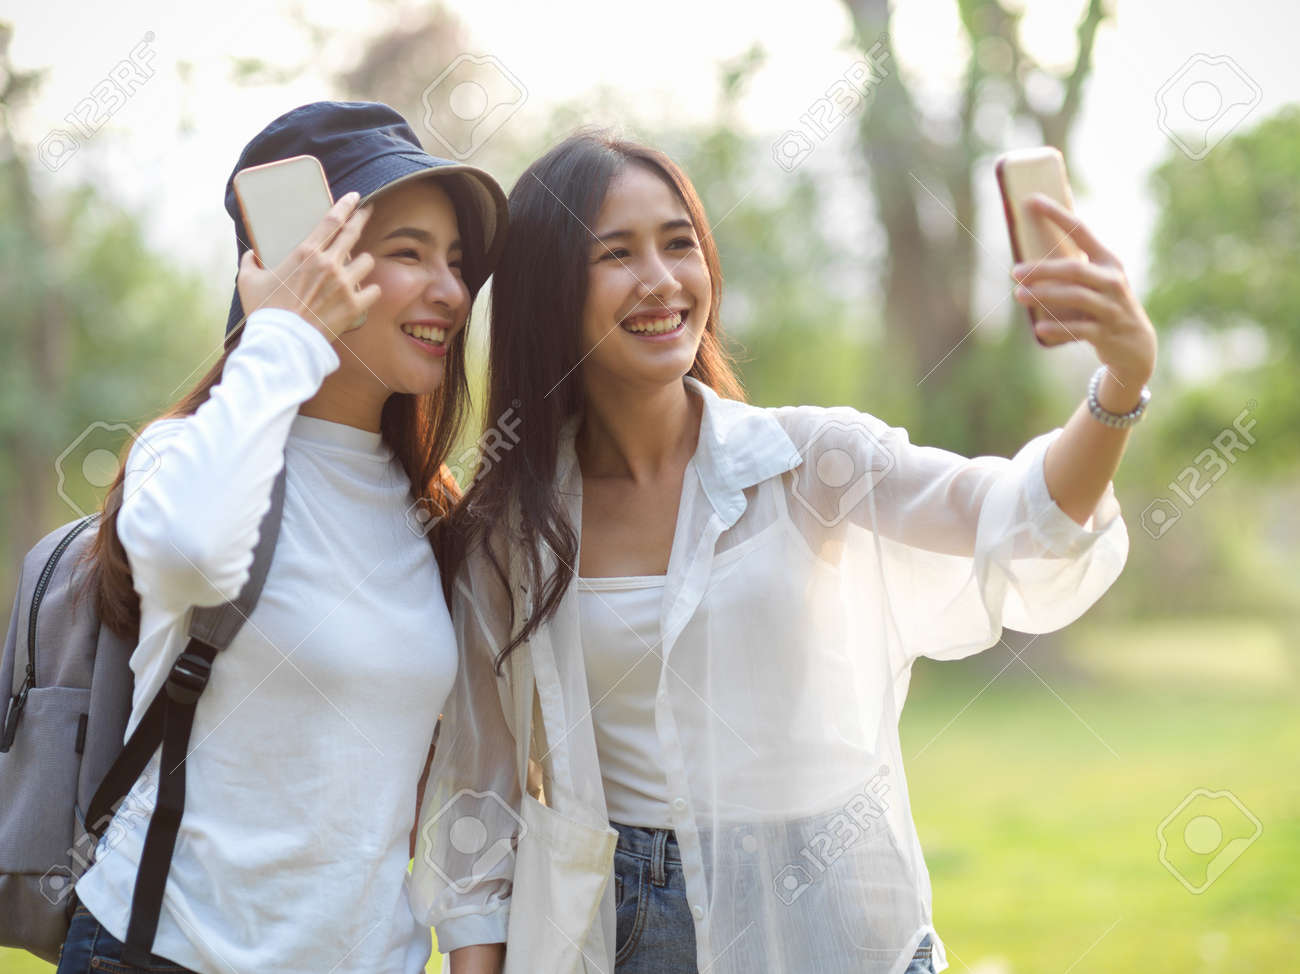 Portraits of two young female travellers taking photo with smartphone while walking around in the park - 167079531